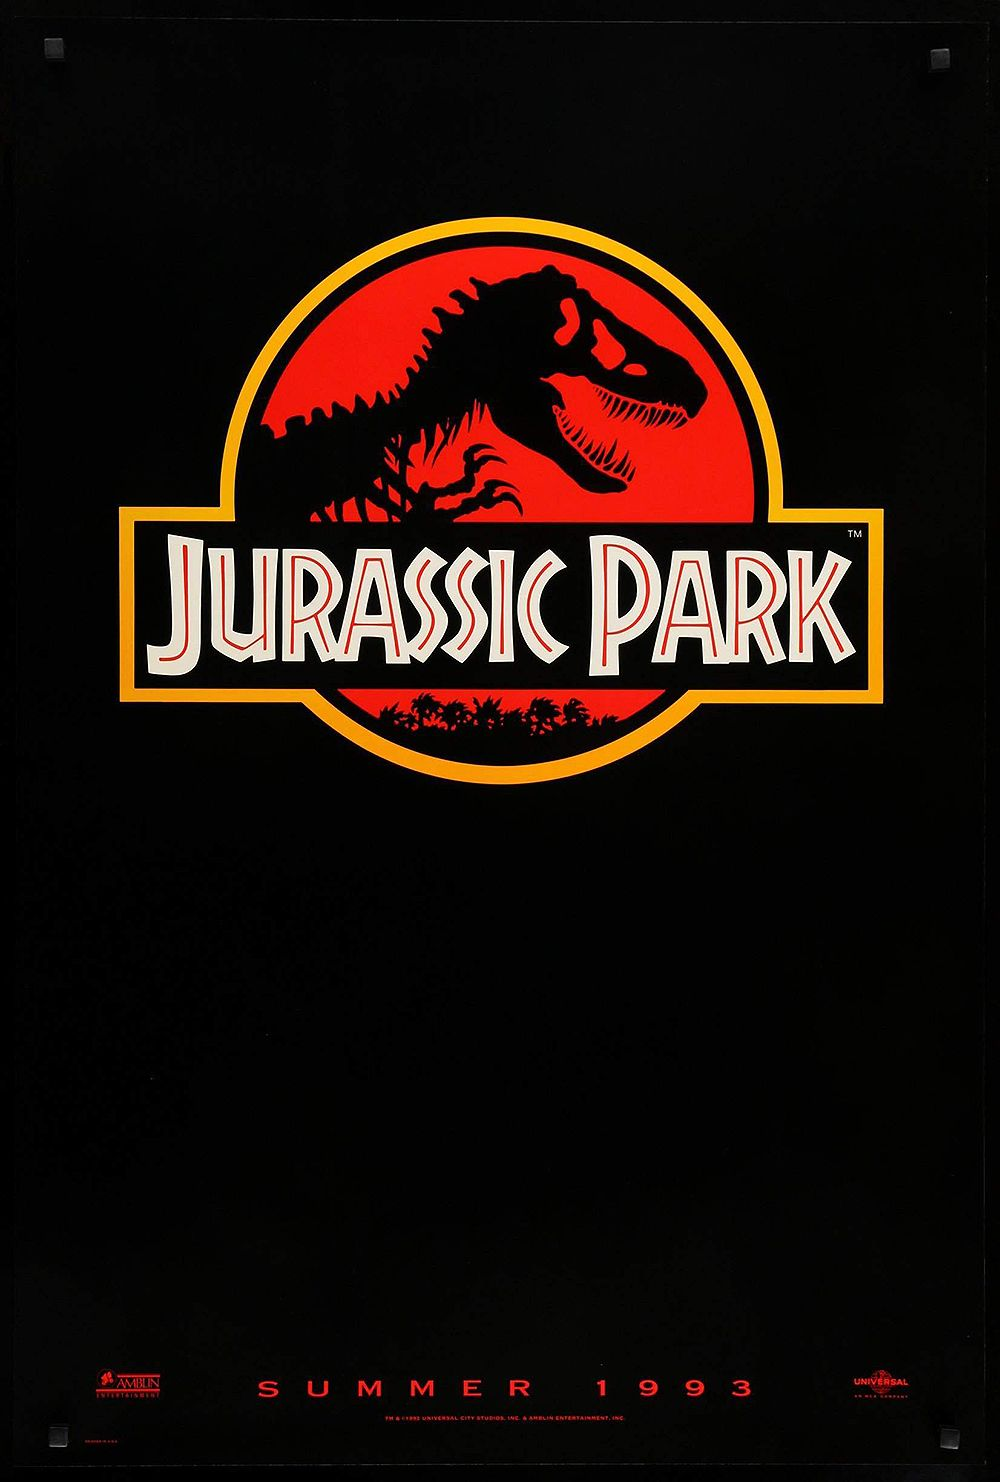 Jurassic Park (1993) Jurassic Park , directed by Steven Spielberg, is set on an island turned into a park of cloned dinosaurs and... (Do you really not know what Jurassic Park is about? Or where we're going with this?) Anyway, the dinosaurs in the film were depicted with groundbreaking computer-generated imagery and the film was the highest-grossing film of all time until Titanic . It also spawned many, many sequels, which eventually led to this gif of Chris Pratt .